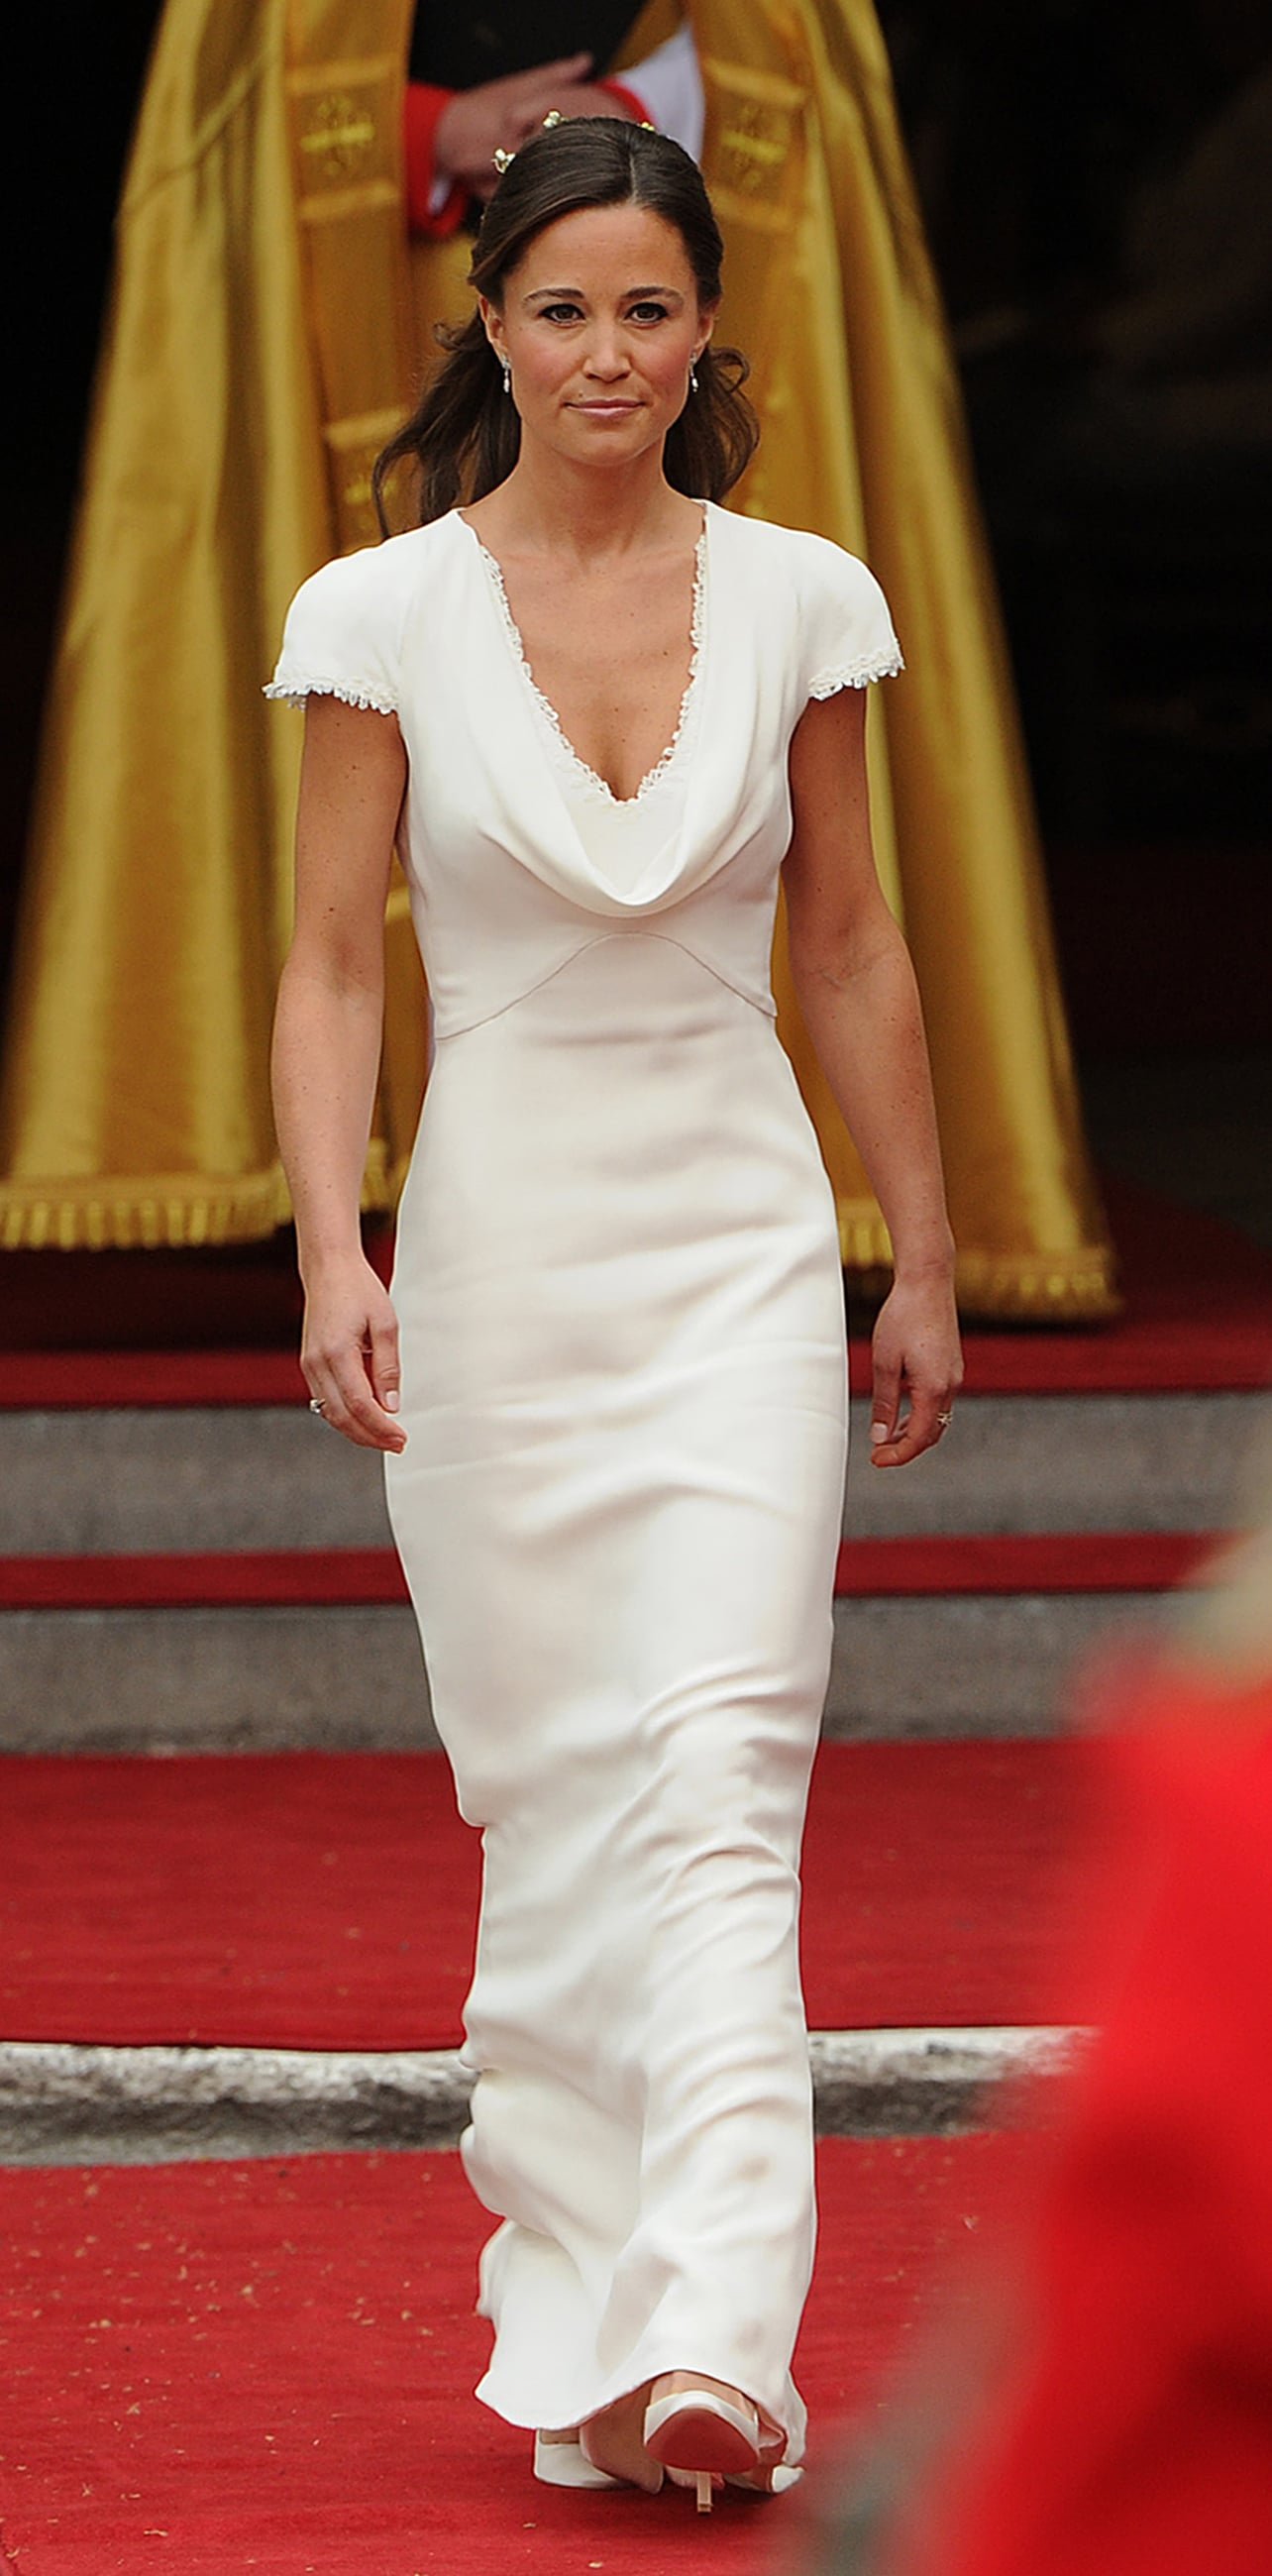 As maid of honor at sister Kate Middleton's wedding, Pippa made quite an impression on the world in her Alexander McQueen dress.